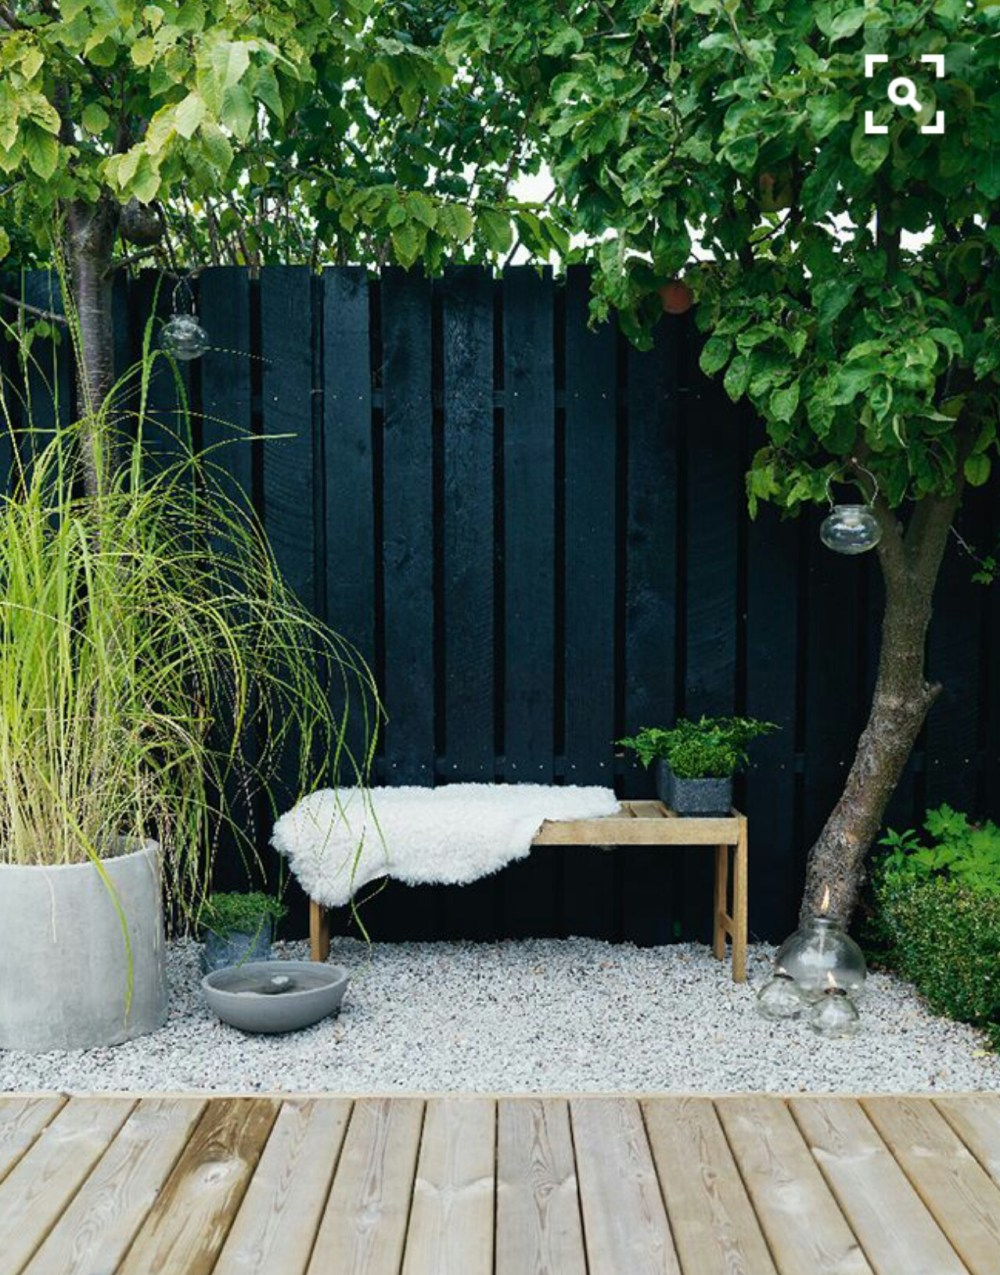 Garden design, a contemporary Scandi inspired makeover. Alice in Scandiland.